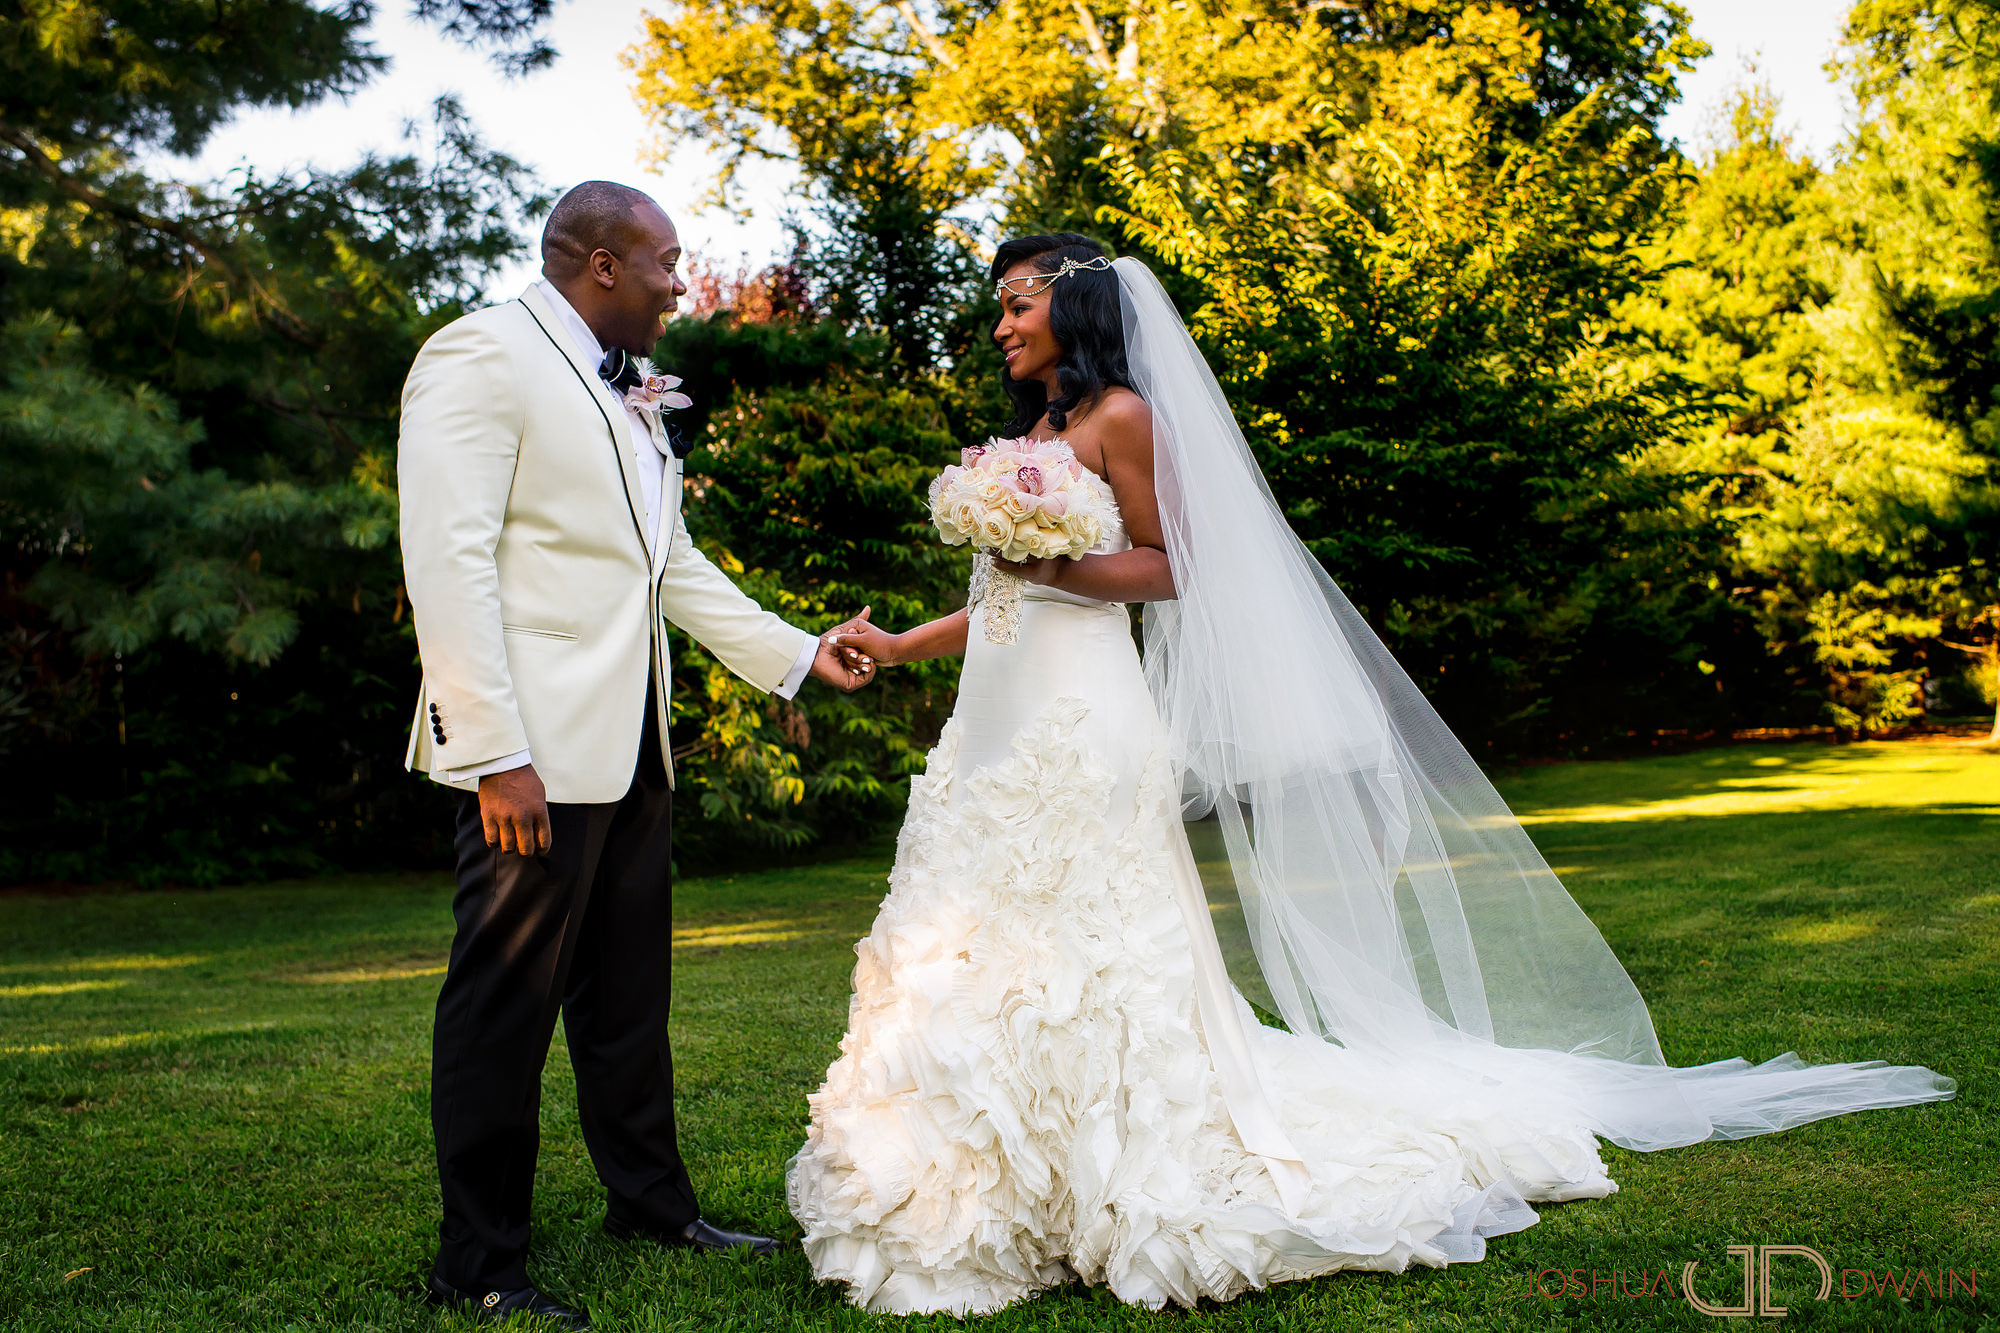 maggie-joe-10-chateau-briand-carle-place-li-wedding-photographer-joshua-dwain